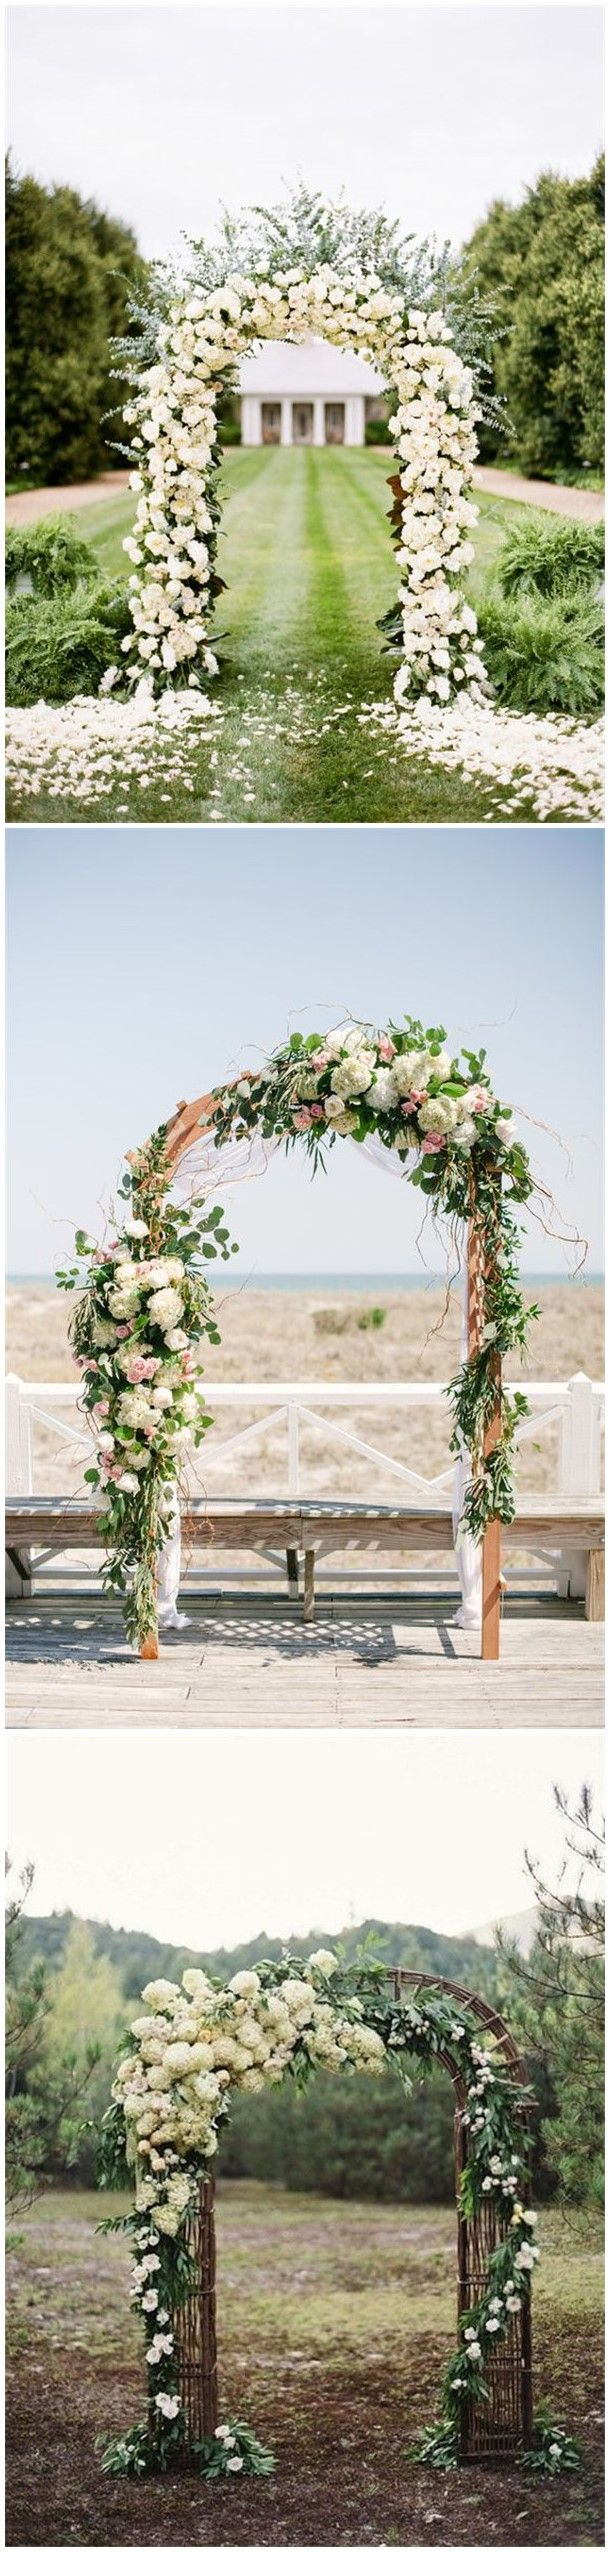 Best 25 rustic wedding arches ideas on pinterest for Arches decoration ideas